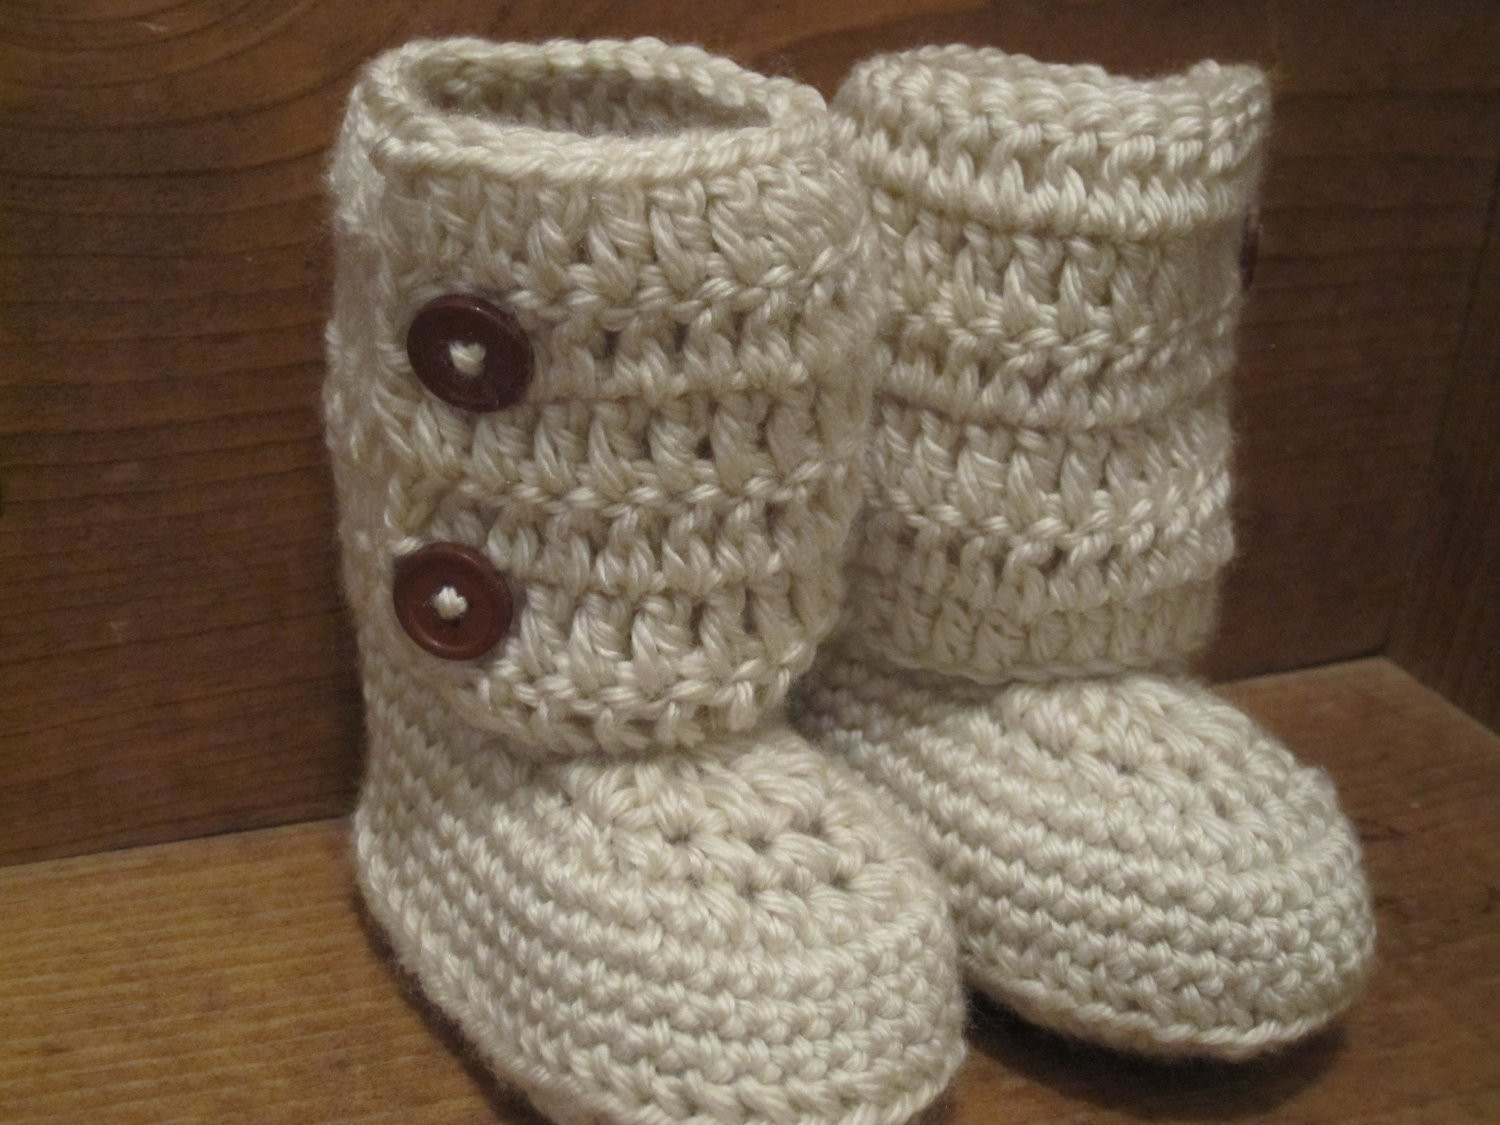 Baby Booties Crochet Pattern Fresh Baby Ankle Boots Crochet Baby Booties Of Top 49 Pictures Baby Booties Crochet Pattern